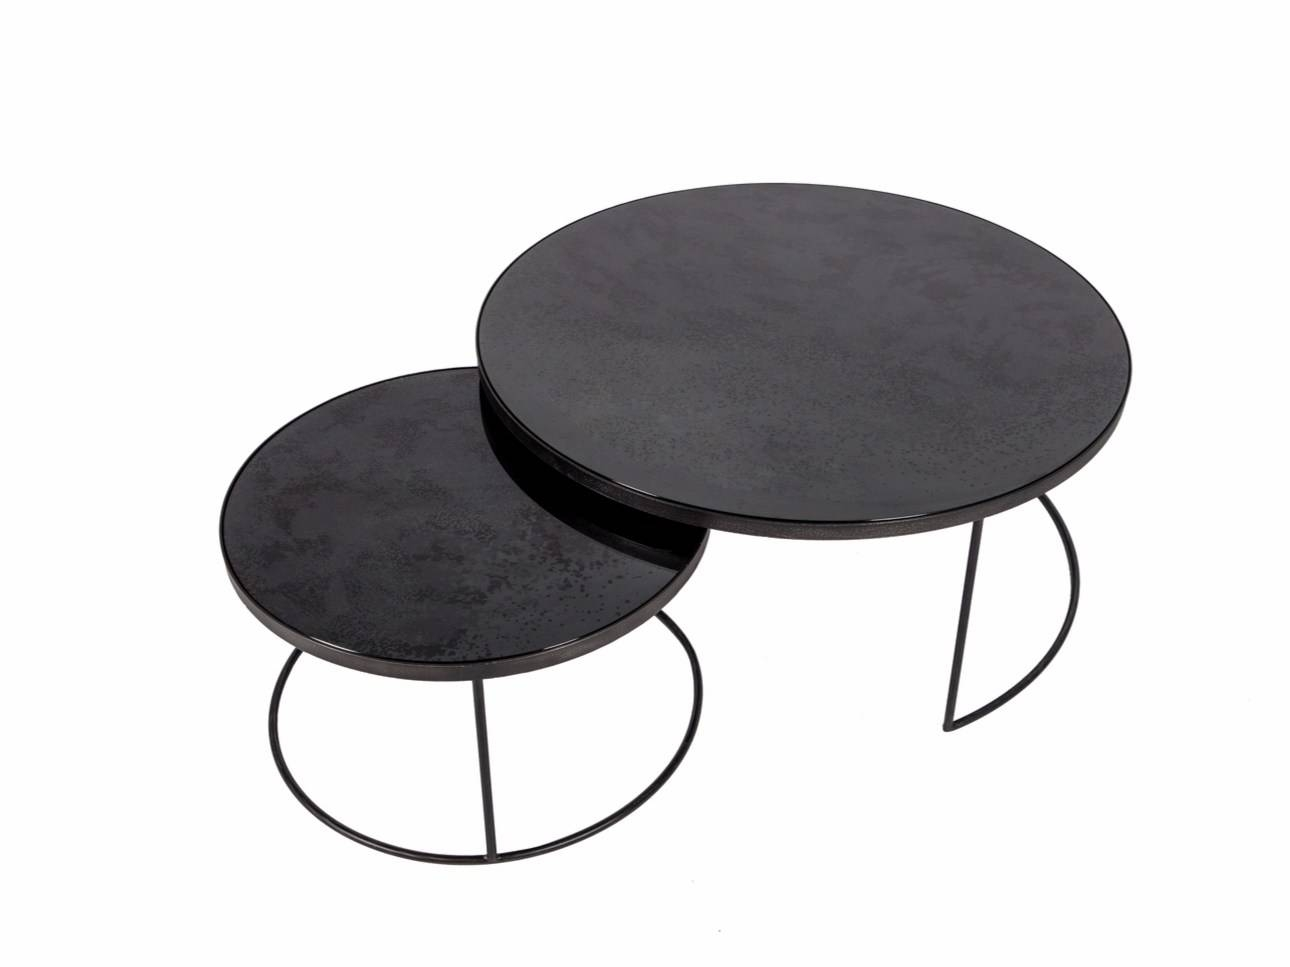 Round Coffee Table Charcoal Nesting Coffee Table Setnotre Throughout Coffee Table With Chairs (View 30 of 30)